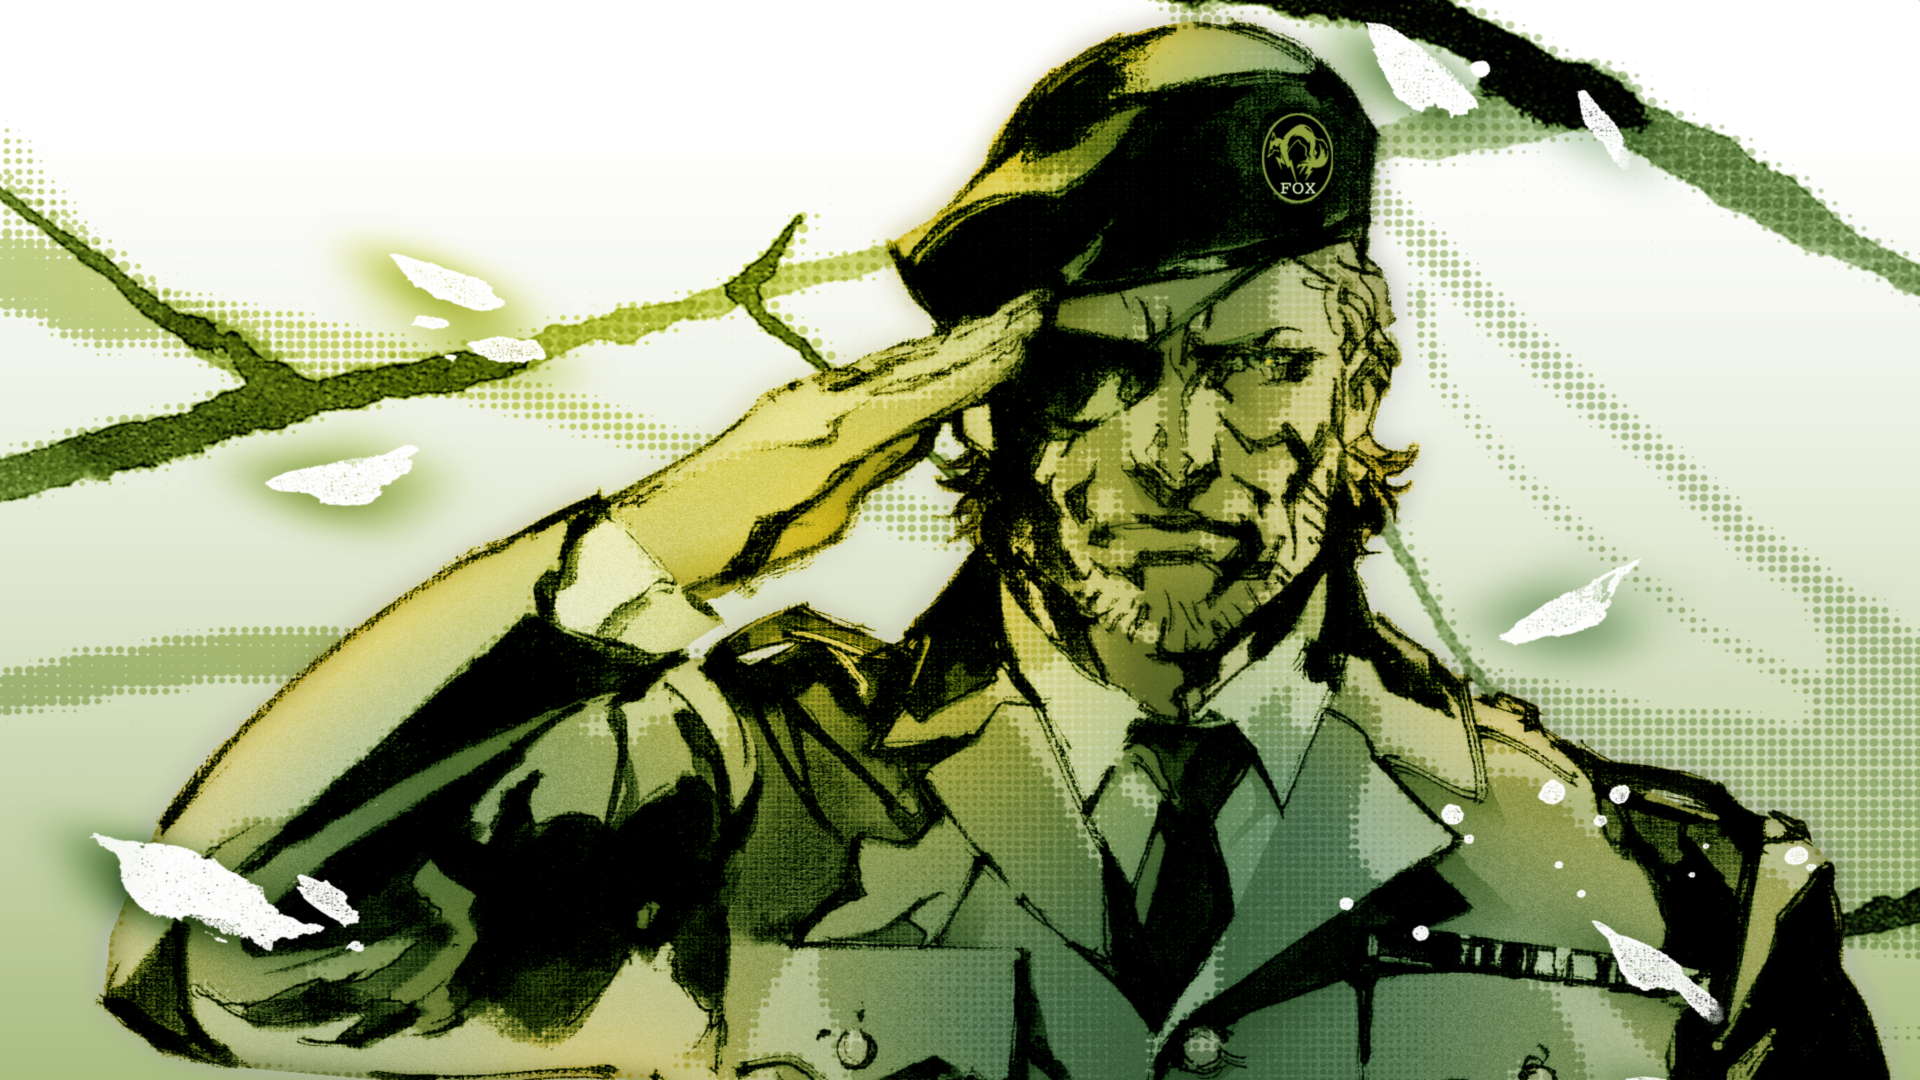 metal-gear-fascination-07